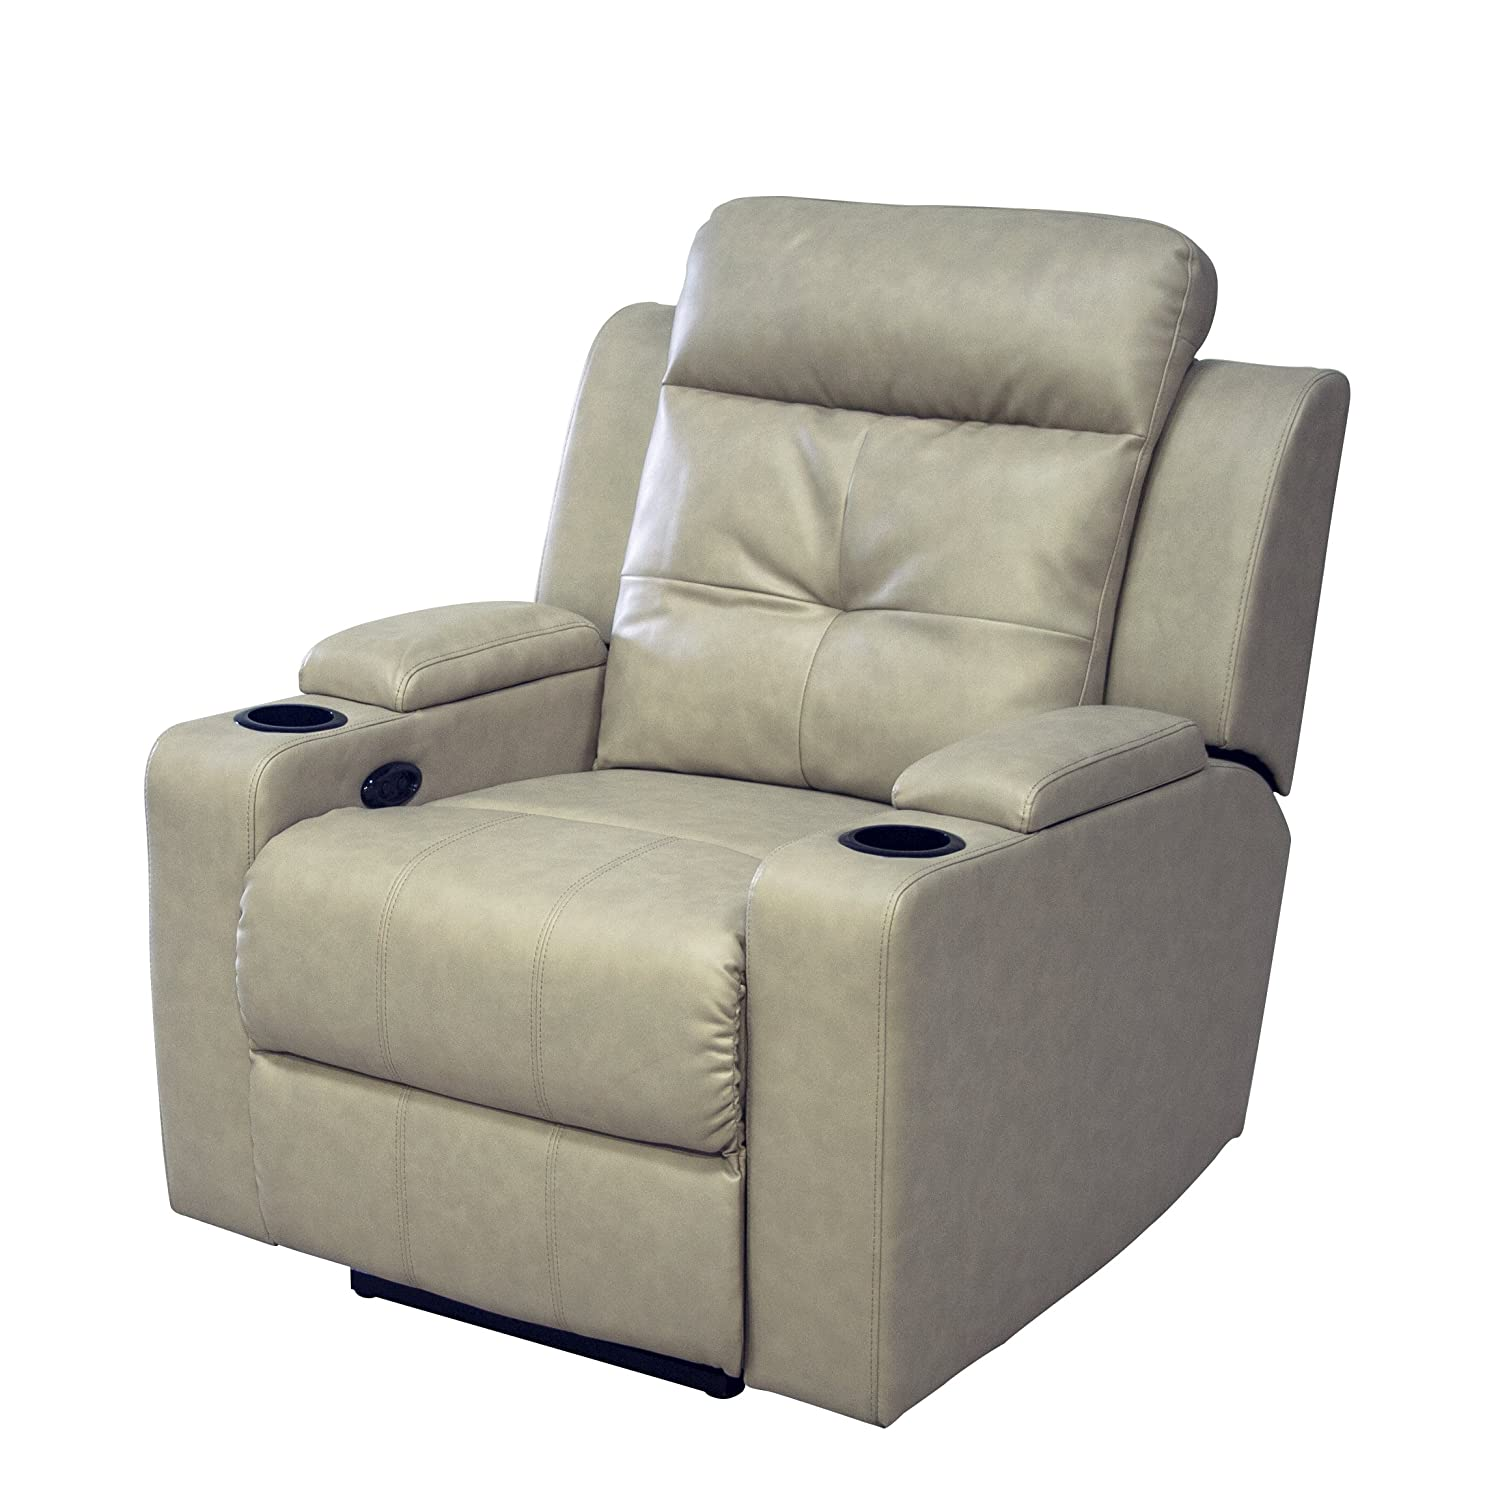 Fine Amazon Com Ac Pacific Aviator Power Reclining Chair Caraccident5 Cool Chair Designs And Ideas Caraccident5Info